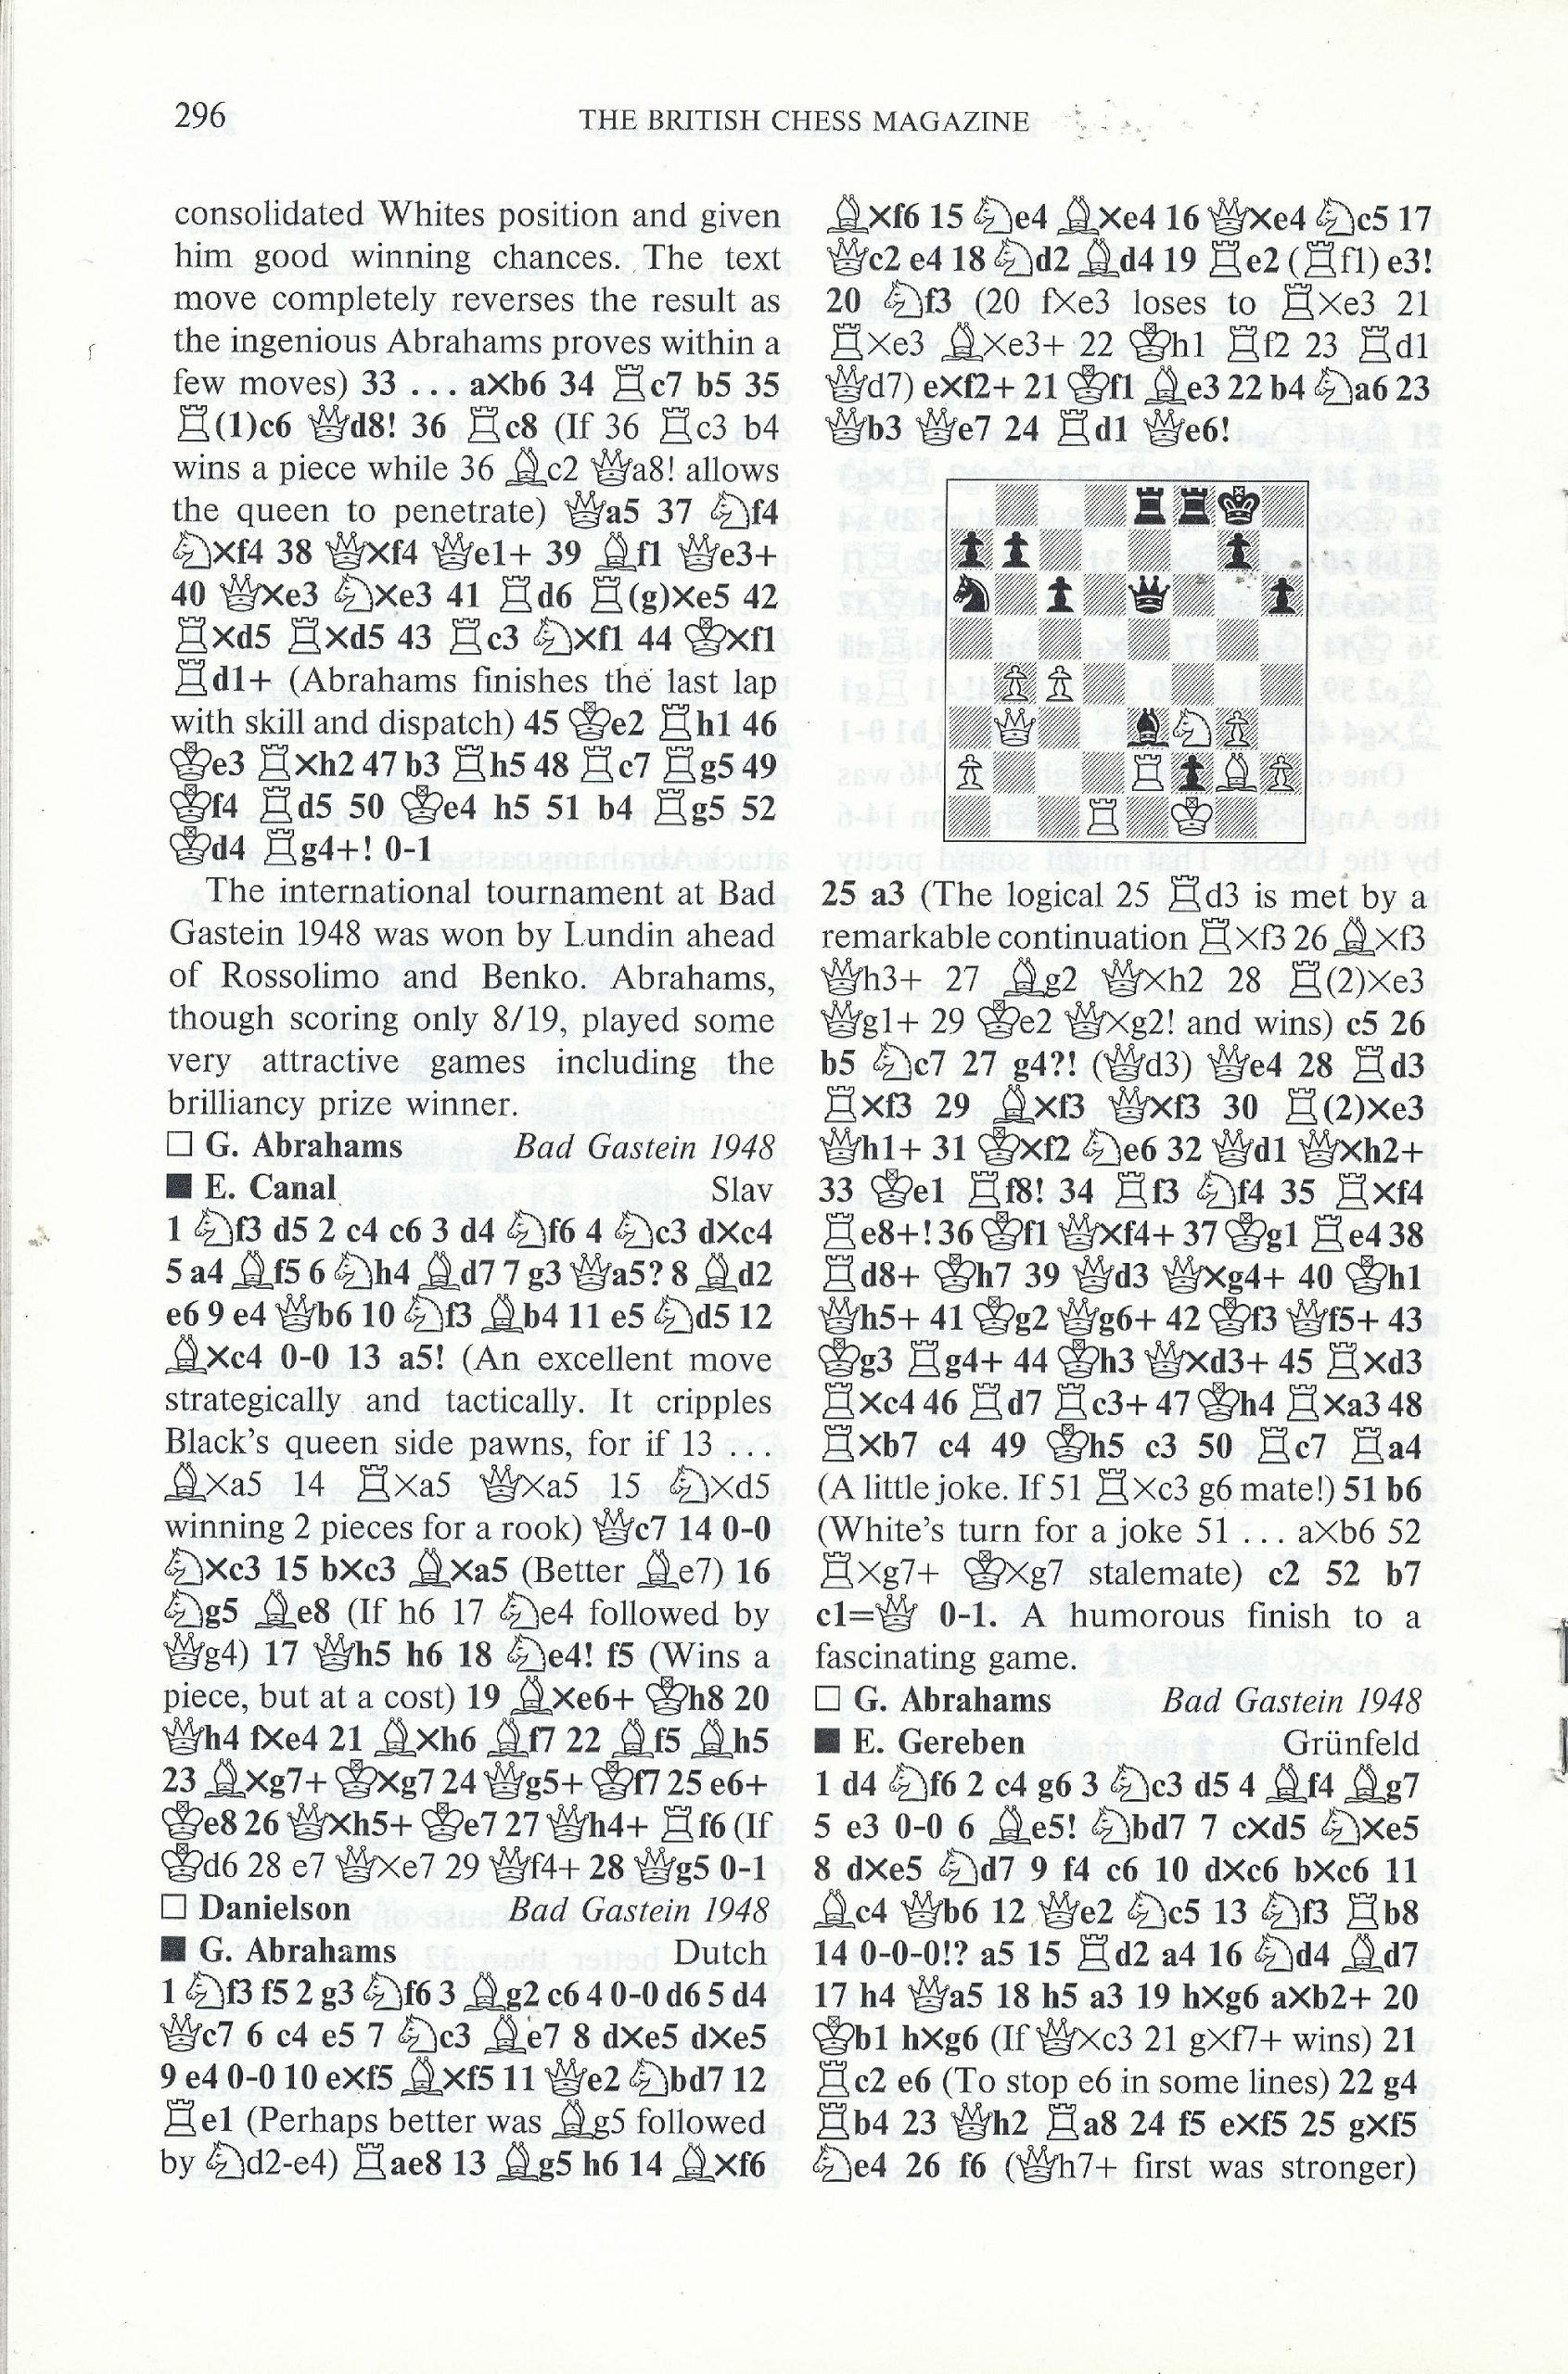 British Chess Magazine, Volume CVIII (1988), Number 7 (July), pp. 296